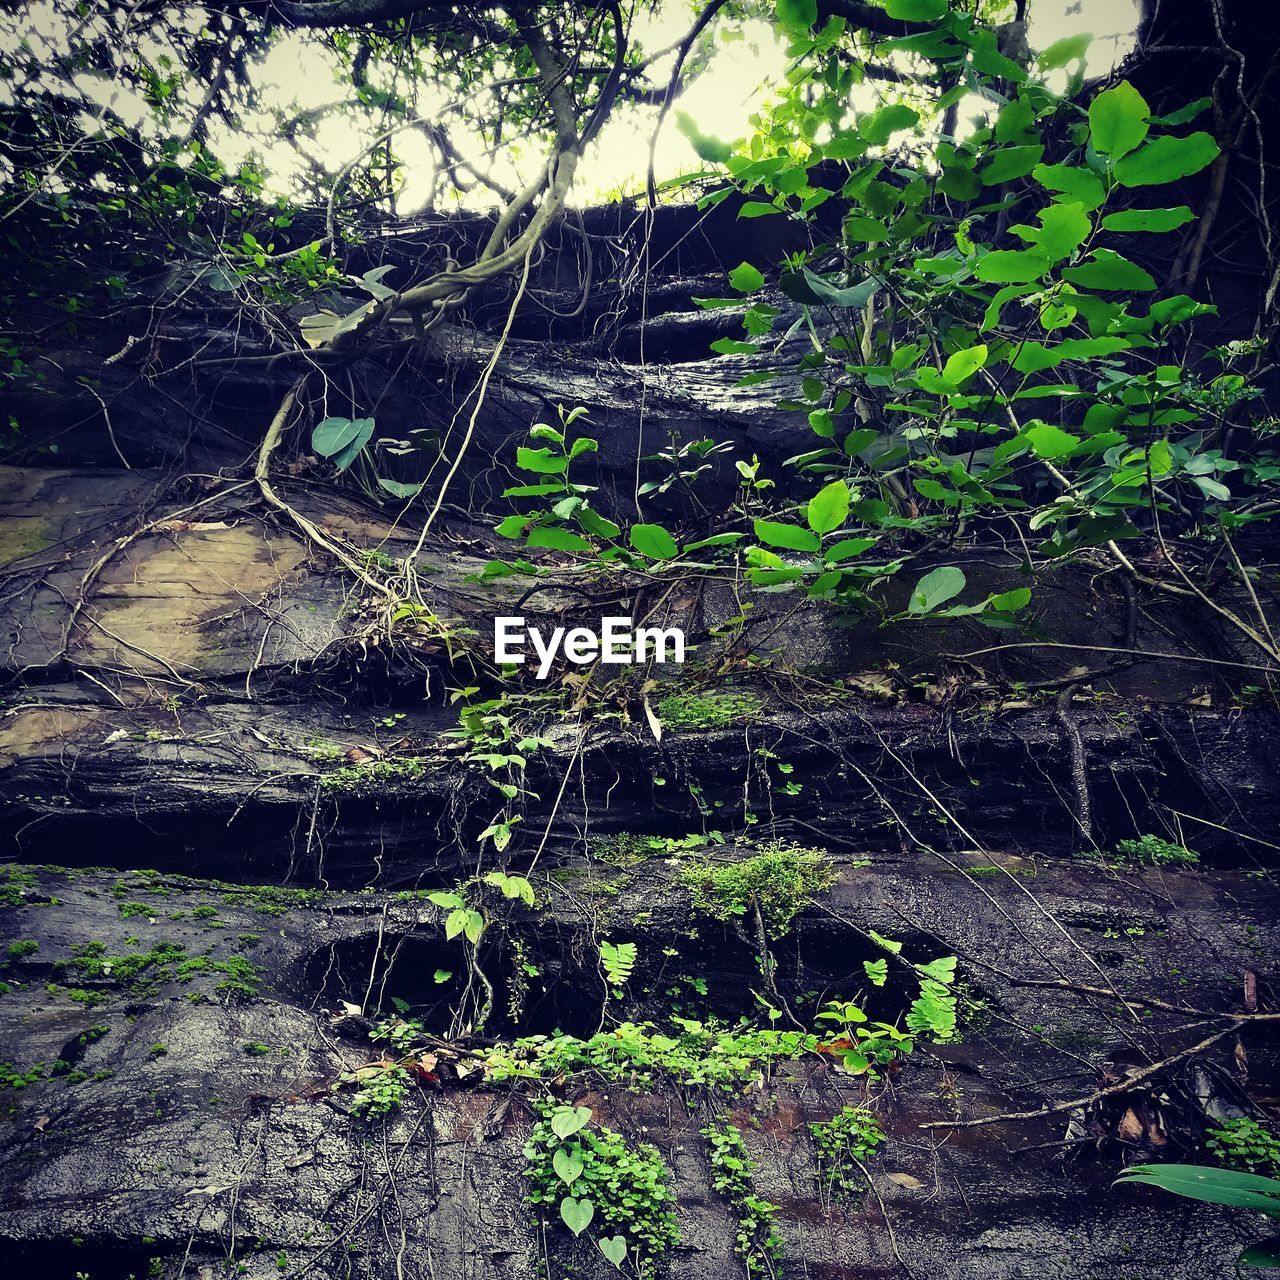 plant, tree, nature, no people, water, forest, growth, day, tranquility, plant part, land, leaf, outdoors, green color, beauty in nature, wet, rock, moss, branch, mud